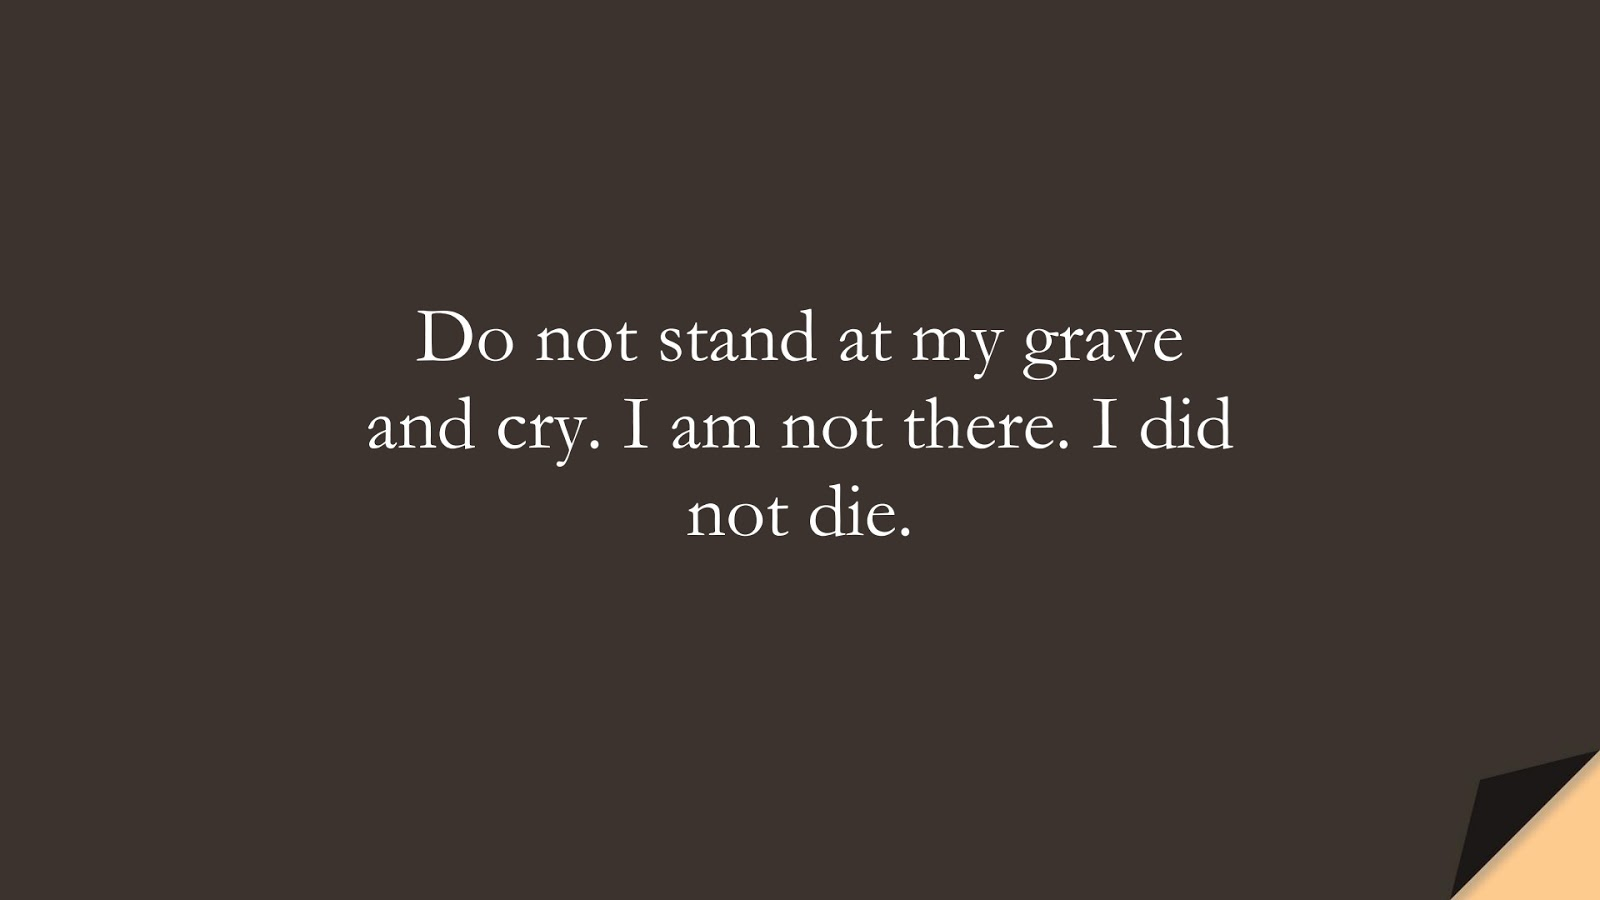 Do not stand at my grave and cry. I am not there. I did not die.FALSE